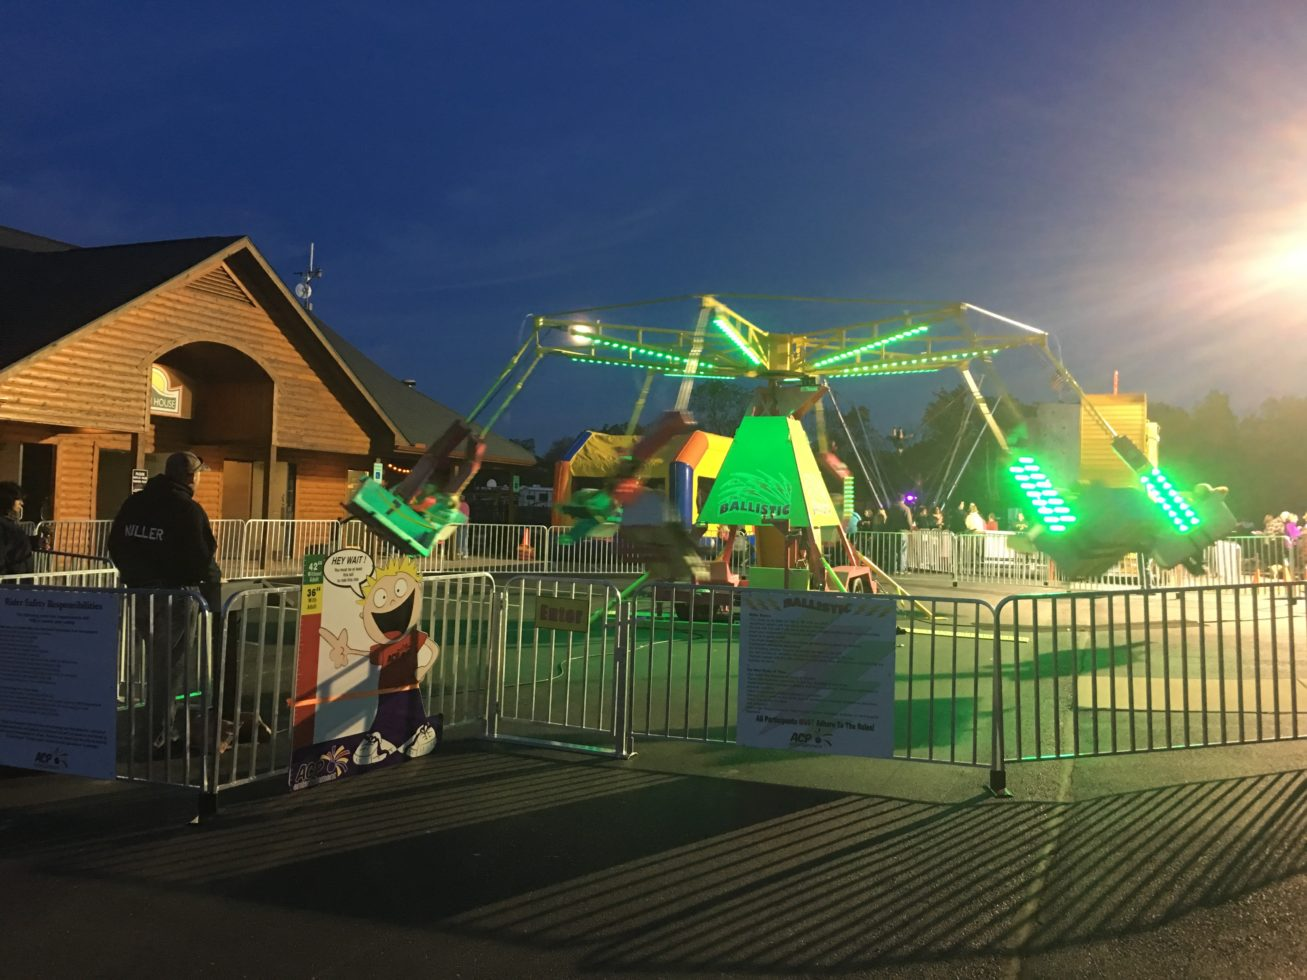 Ballistic ride at night with lights on